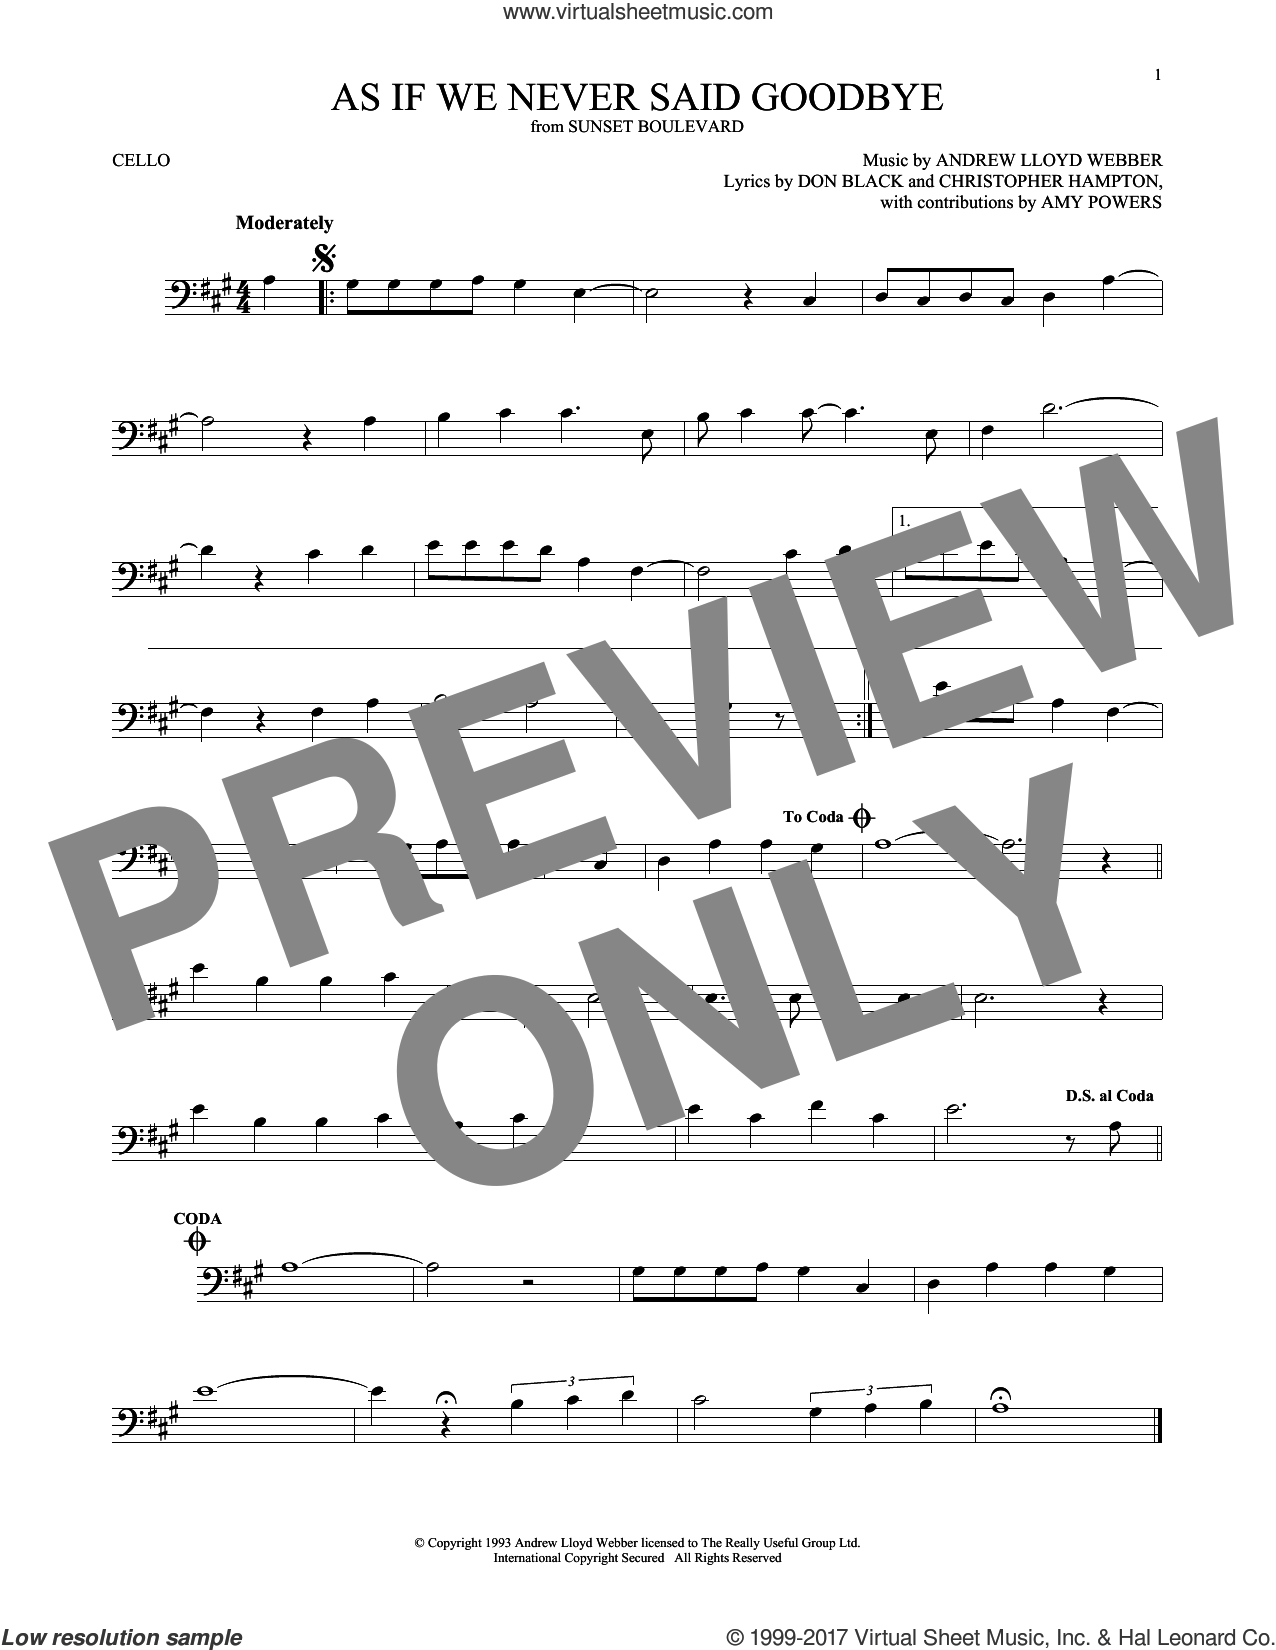 As If We Never Said Goodbye (from Sunset Boulevard) sheet music for cello solo by Andrew Lloyd Webber, Christopher Hampton and Don Black, intermediate skill level